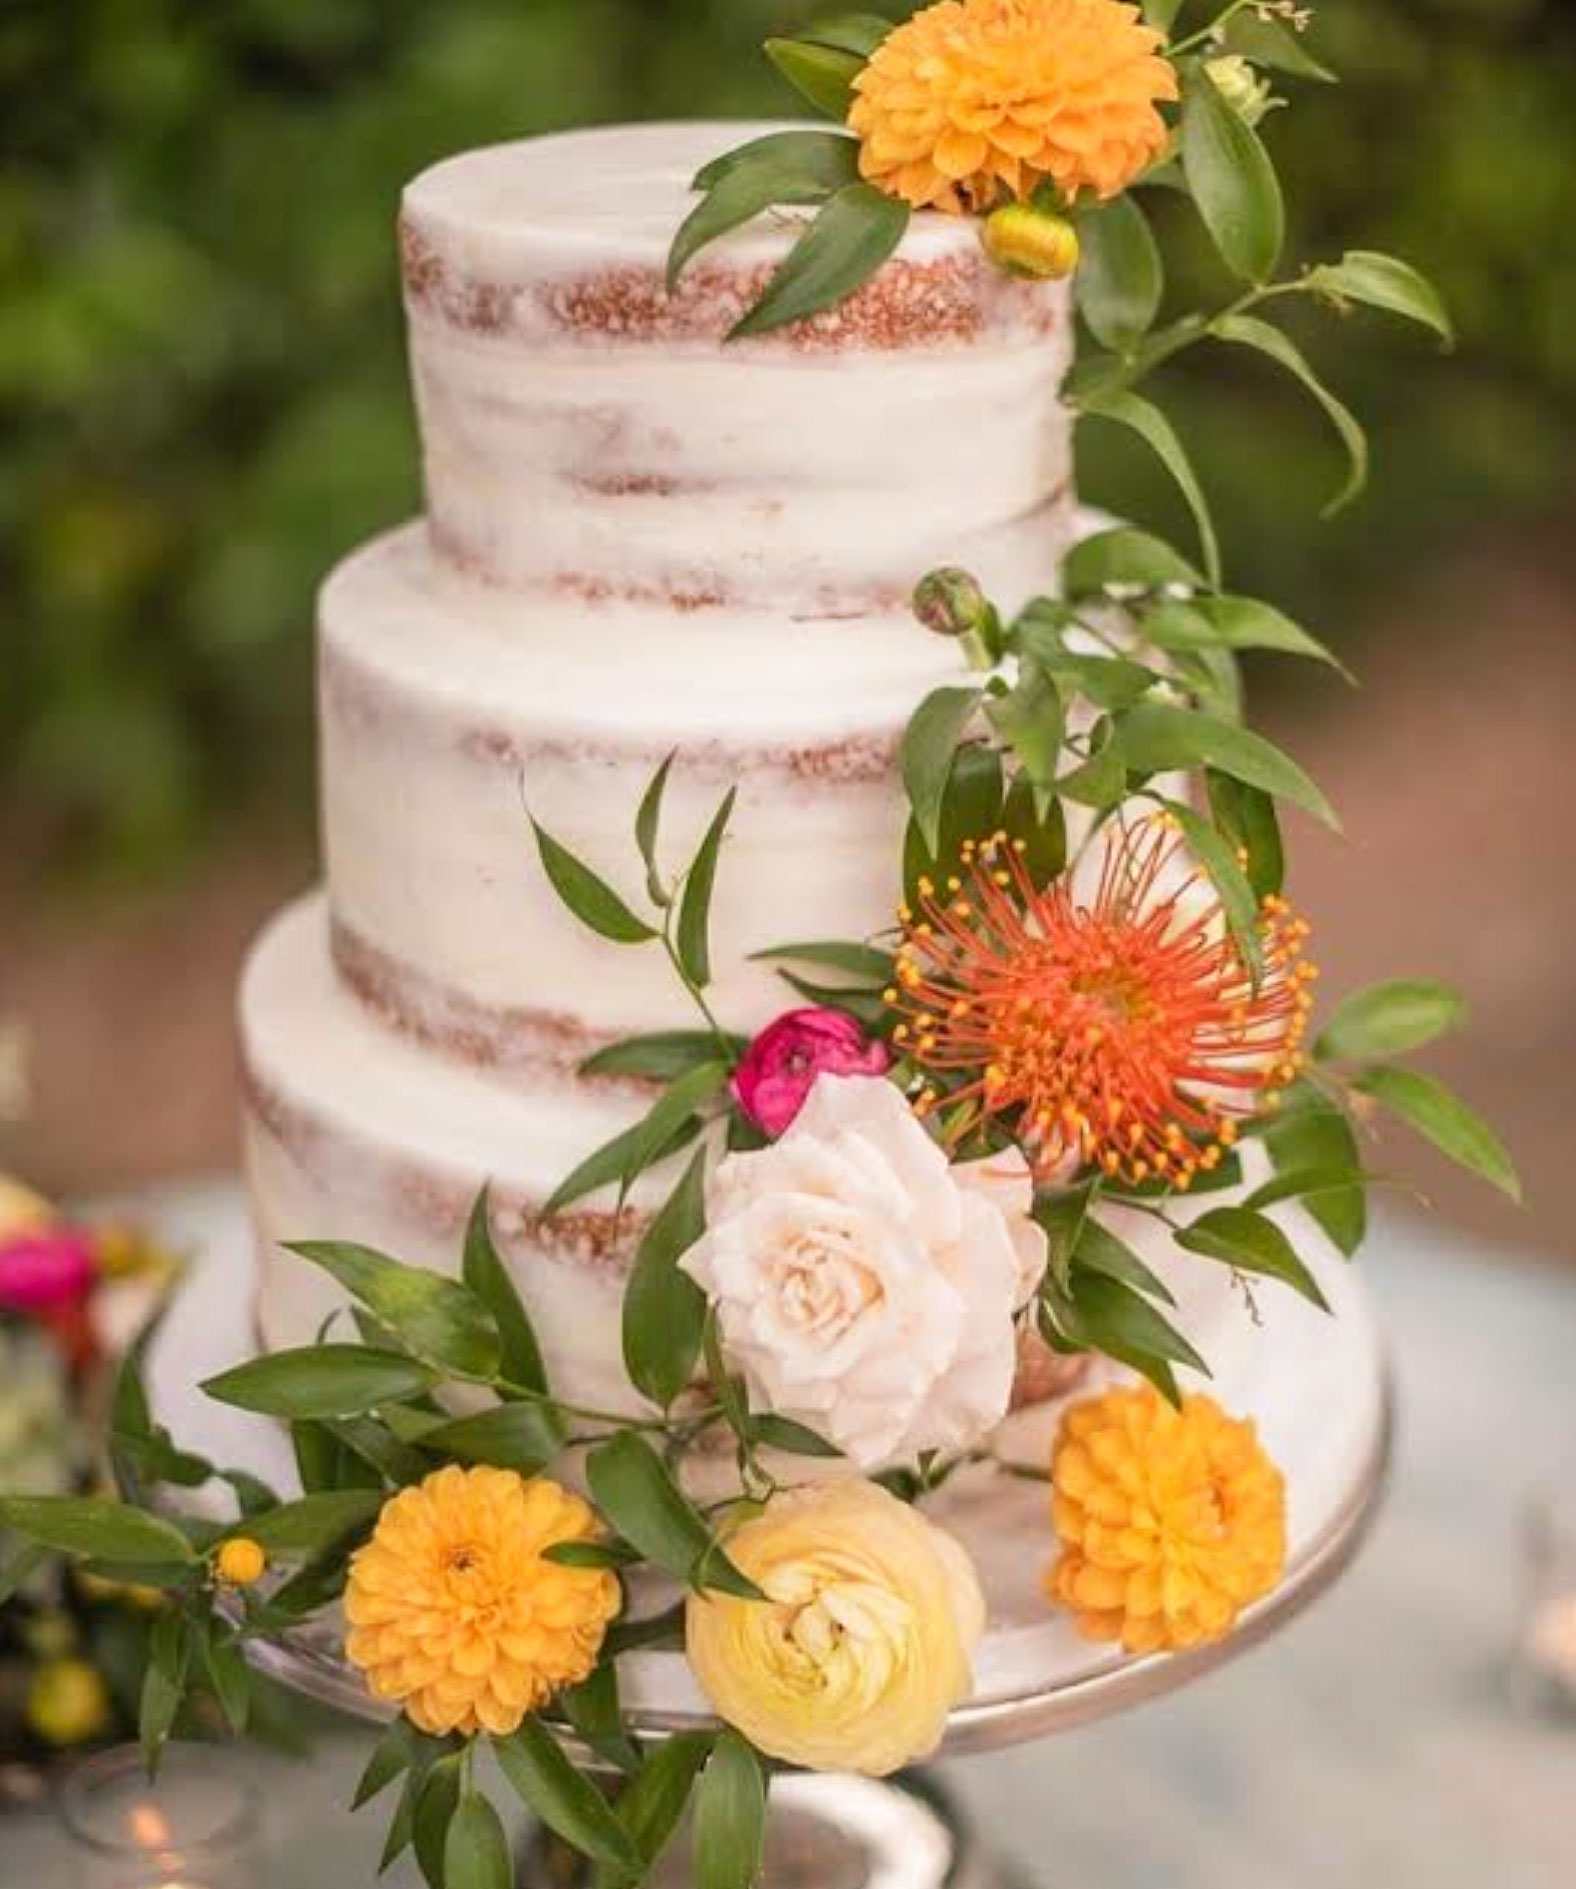 cake-with-flowers-wedding-eventmates.jpg